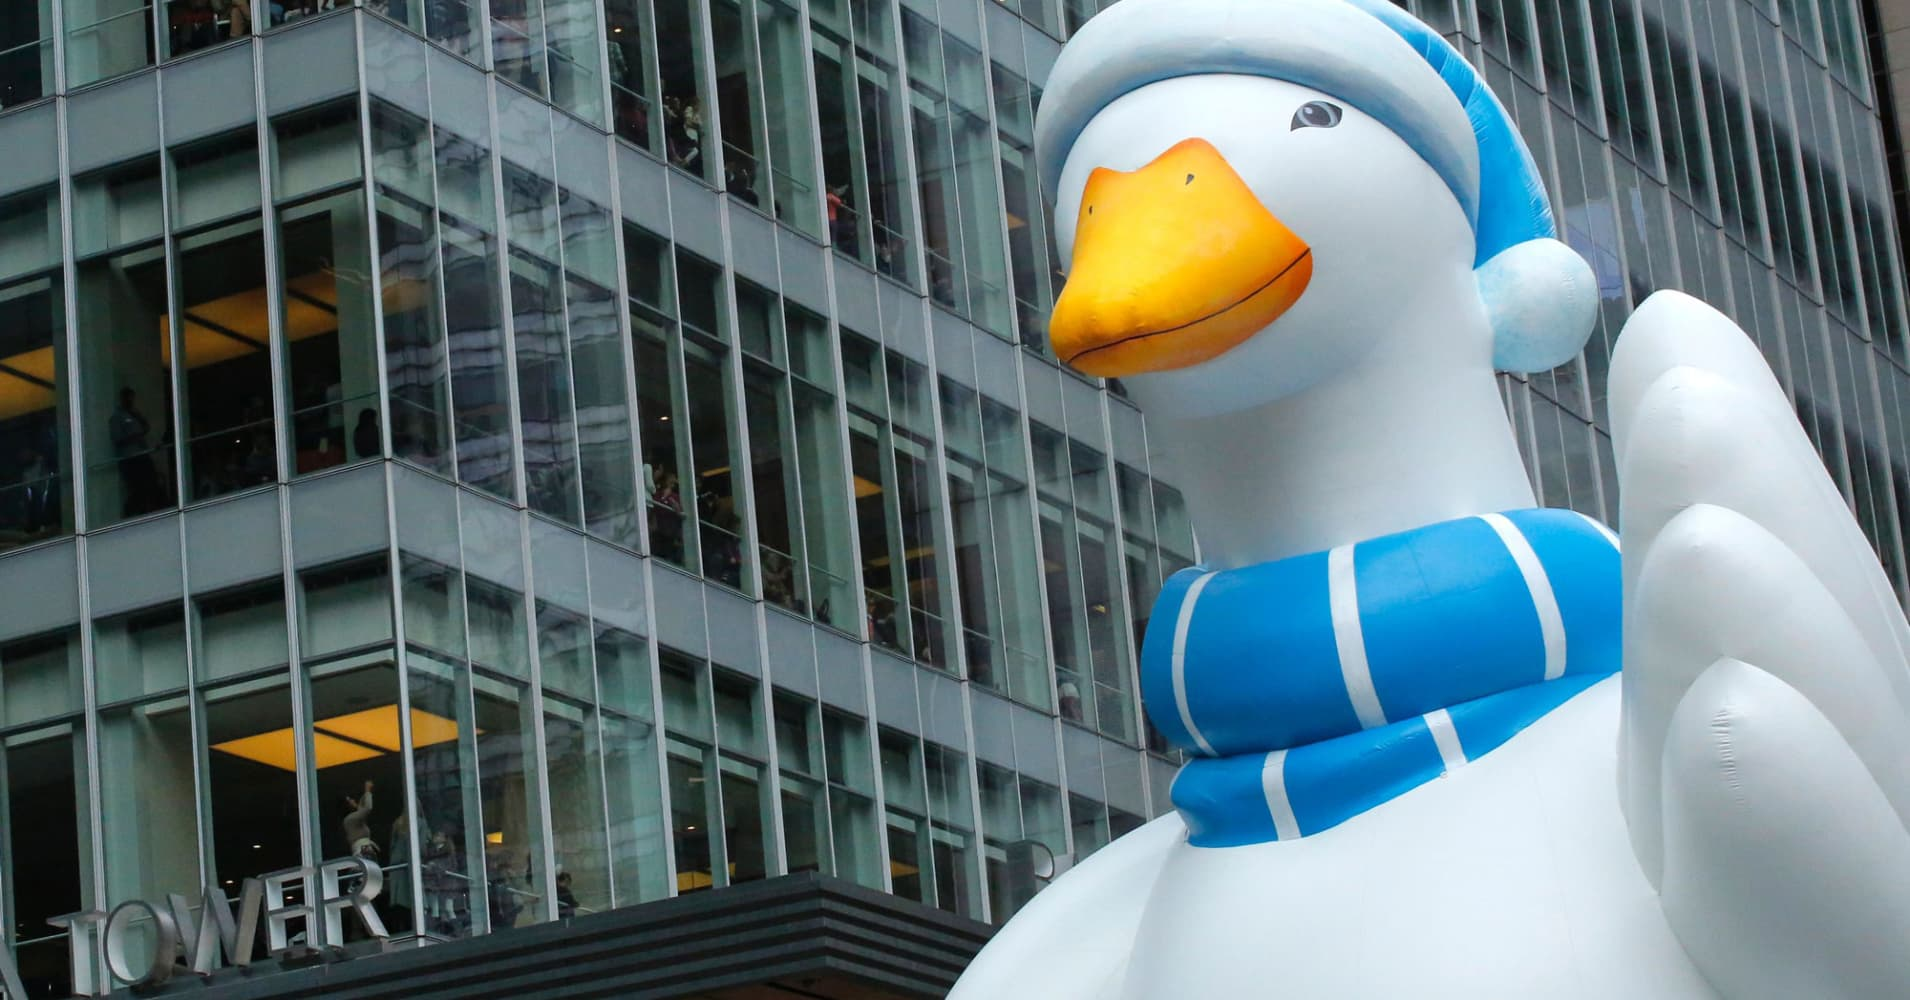 JPMorgan says Street might be too bearish on Aflac, upgrades the stock to overweight